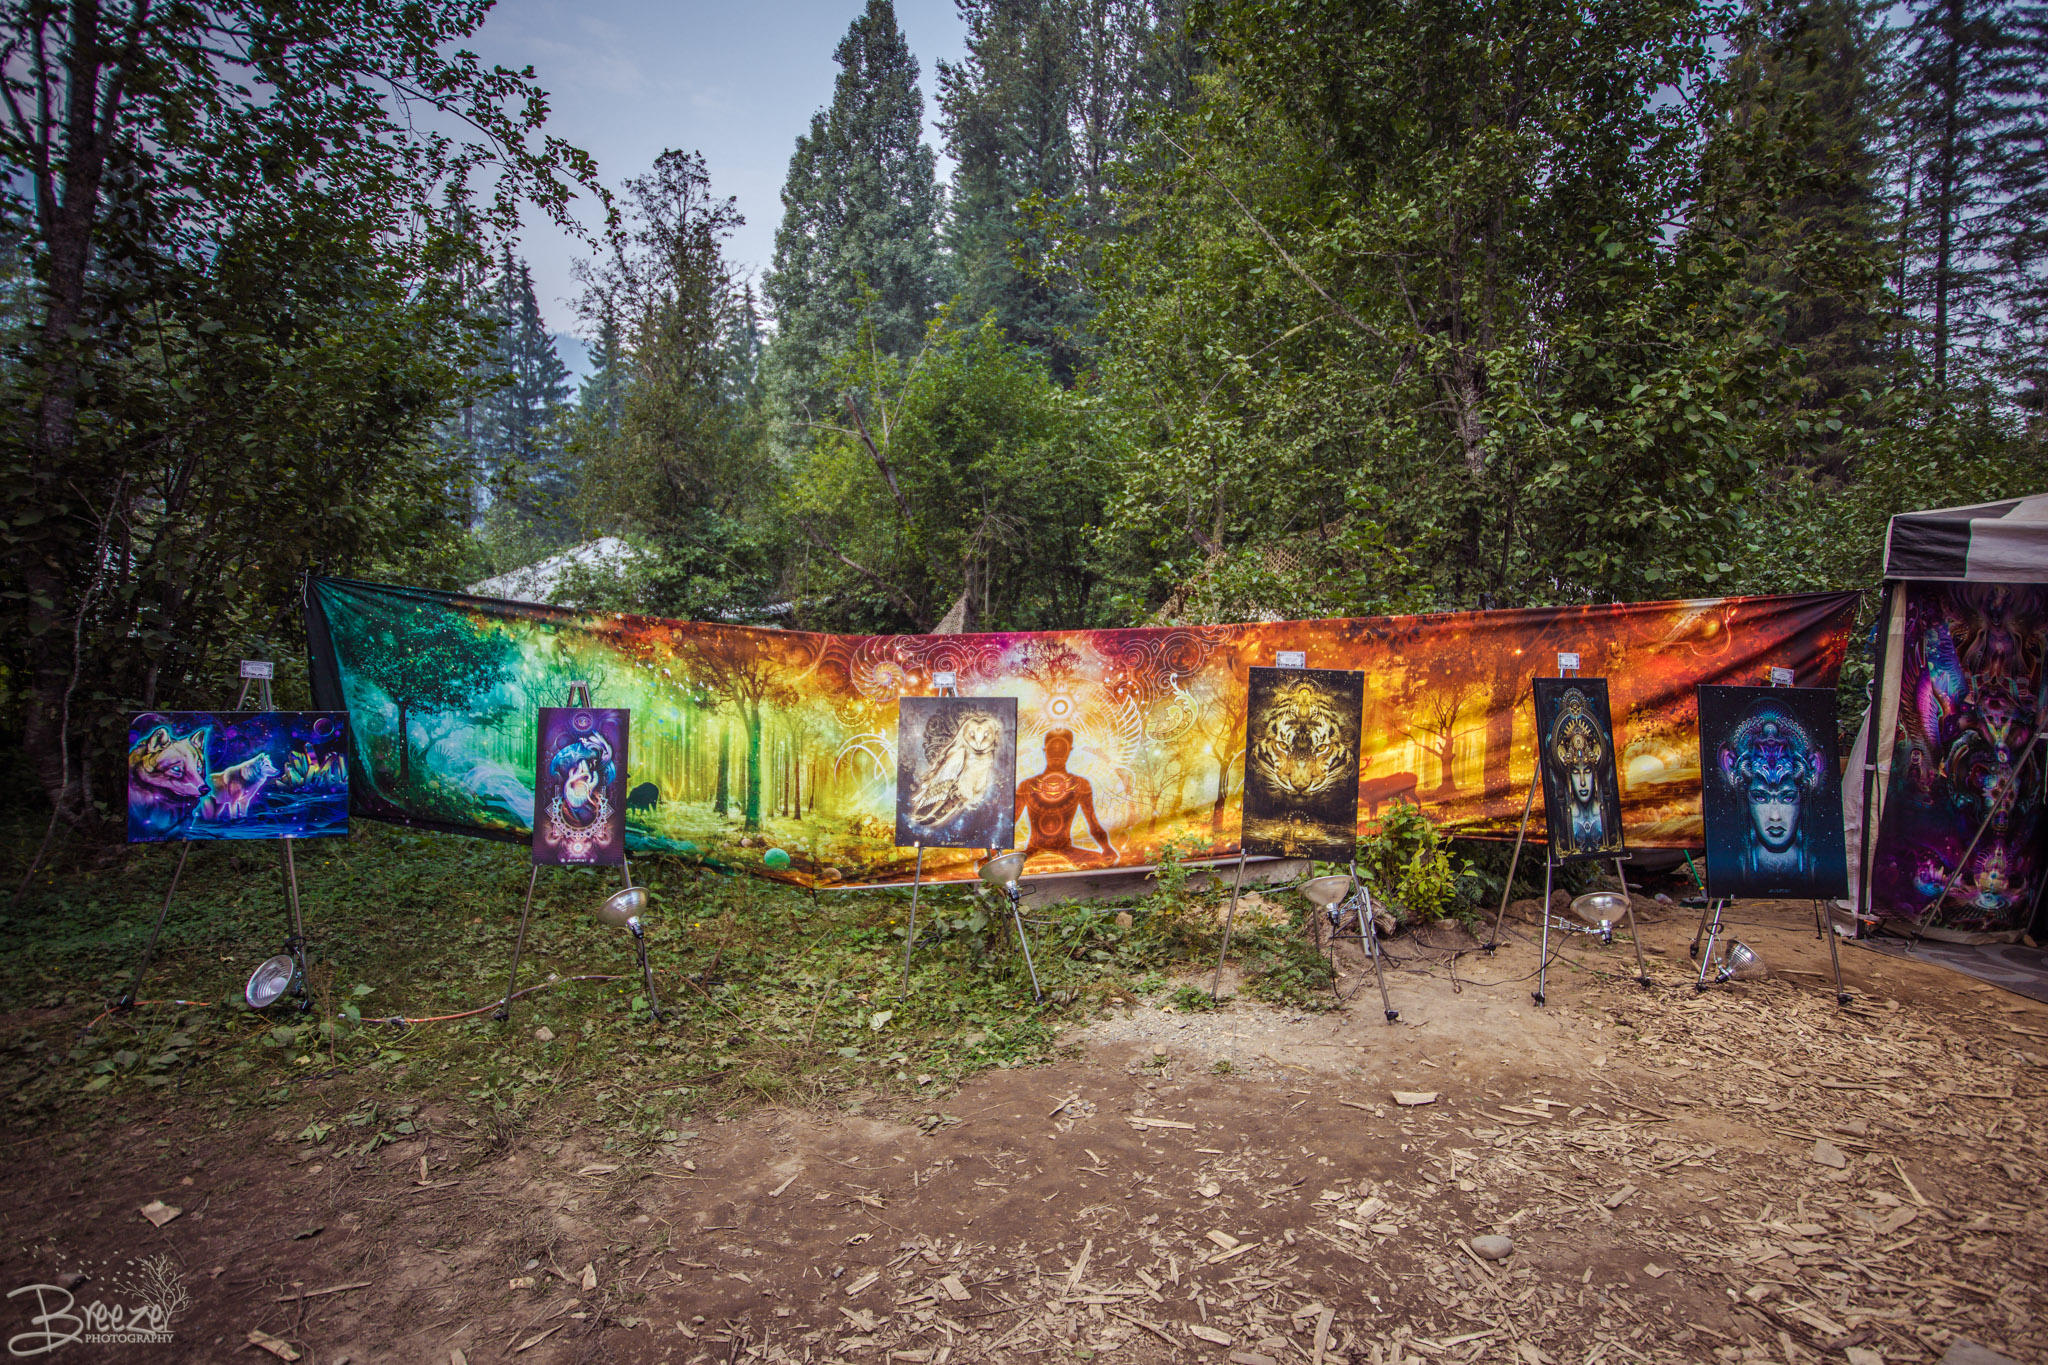 Brie'Ana Breeze Photography & Media - Shambhala 2018-1735.jpg